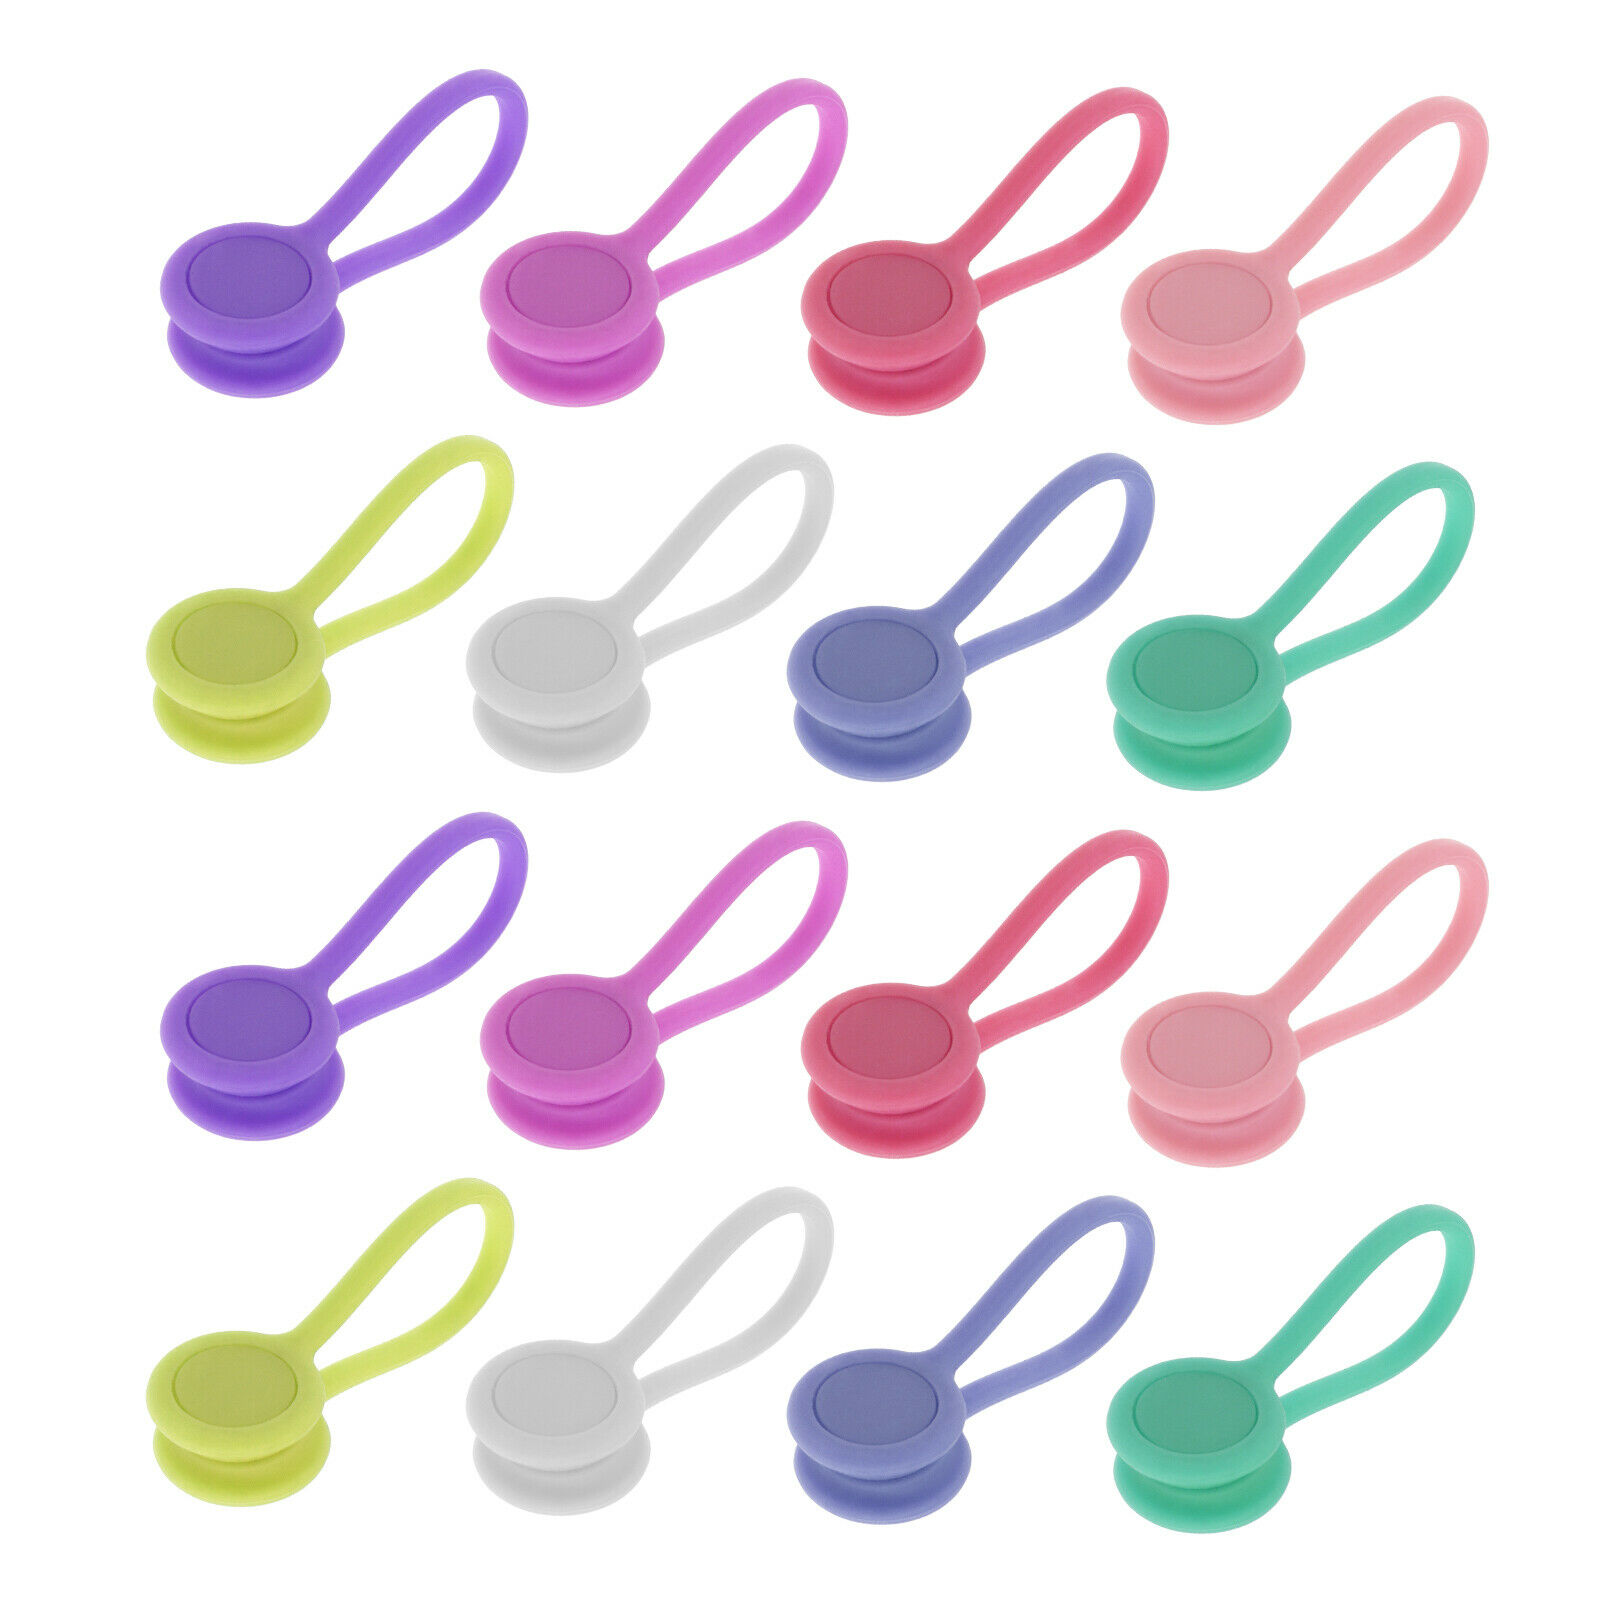 16pcs Magnetic Silicone Cable Clips Winders for Organizing Headphones USB Wire